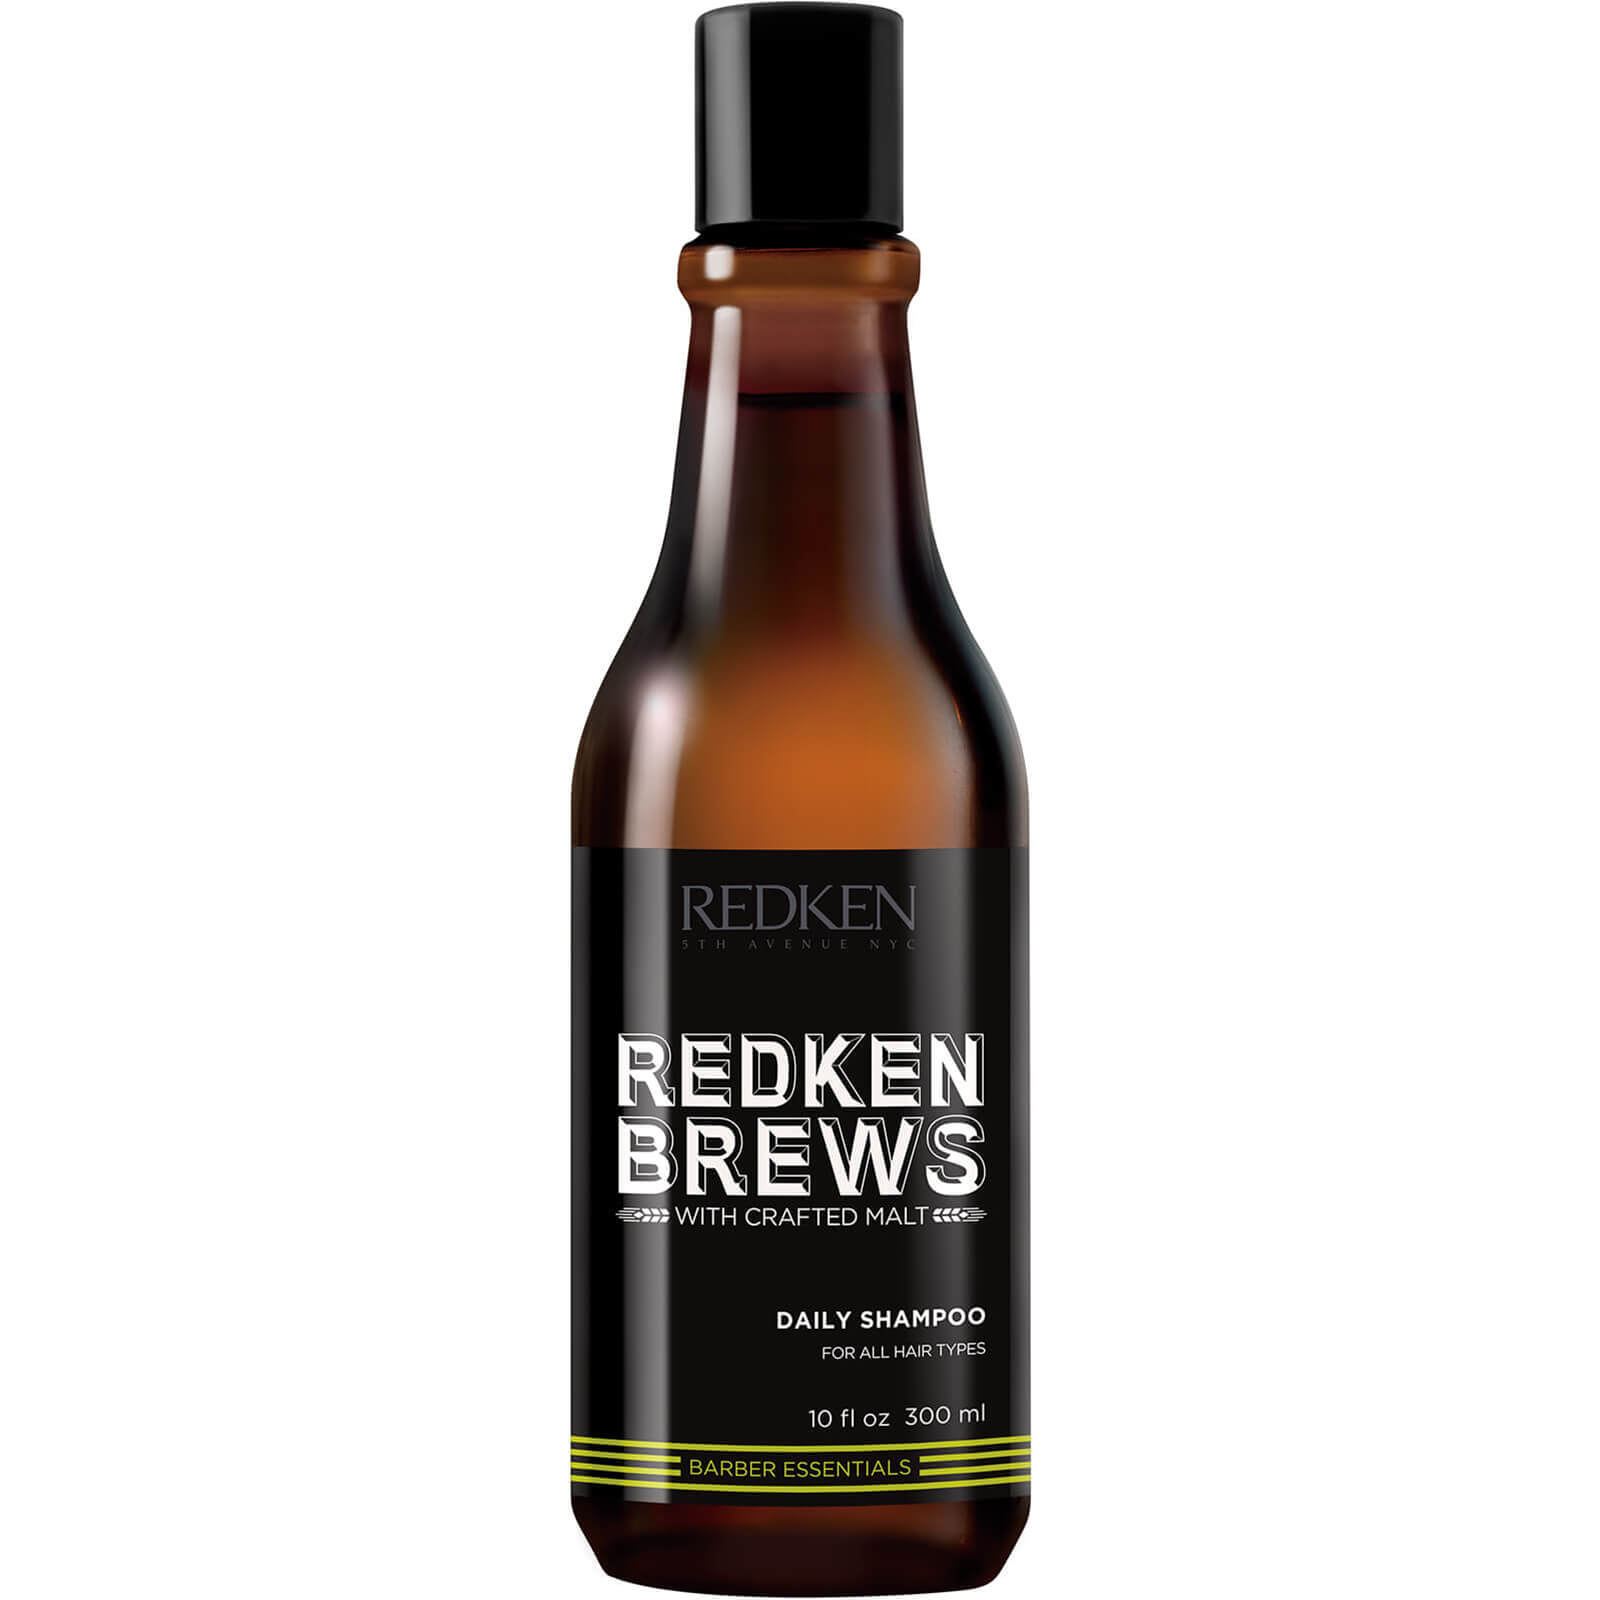 Redken Brews Men's Daily Shampoo 300 ml von Redken